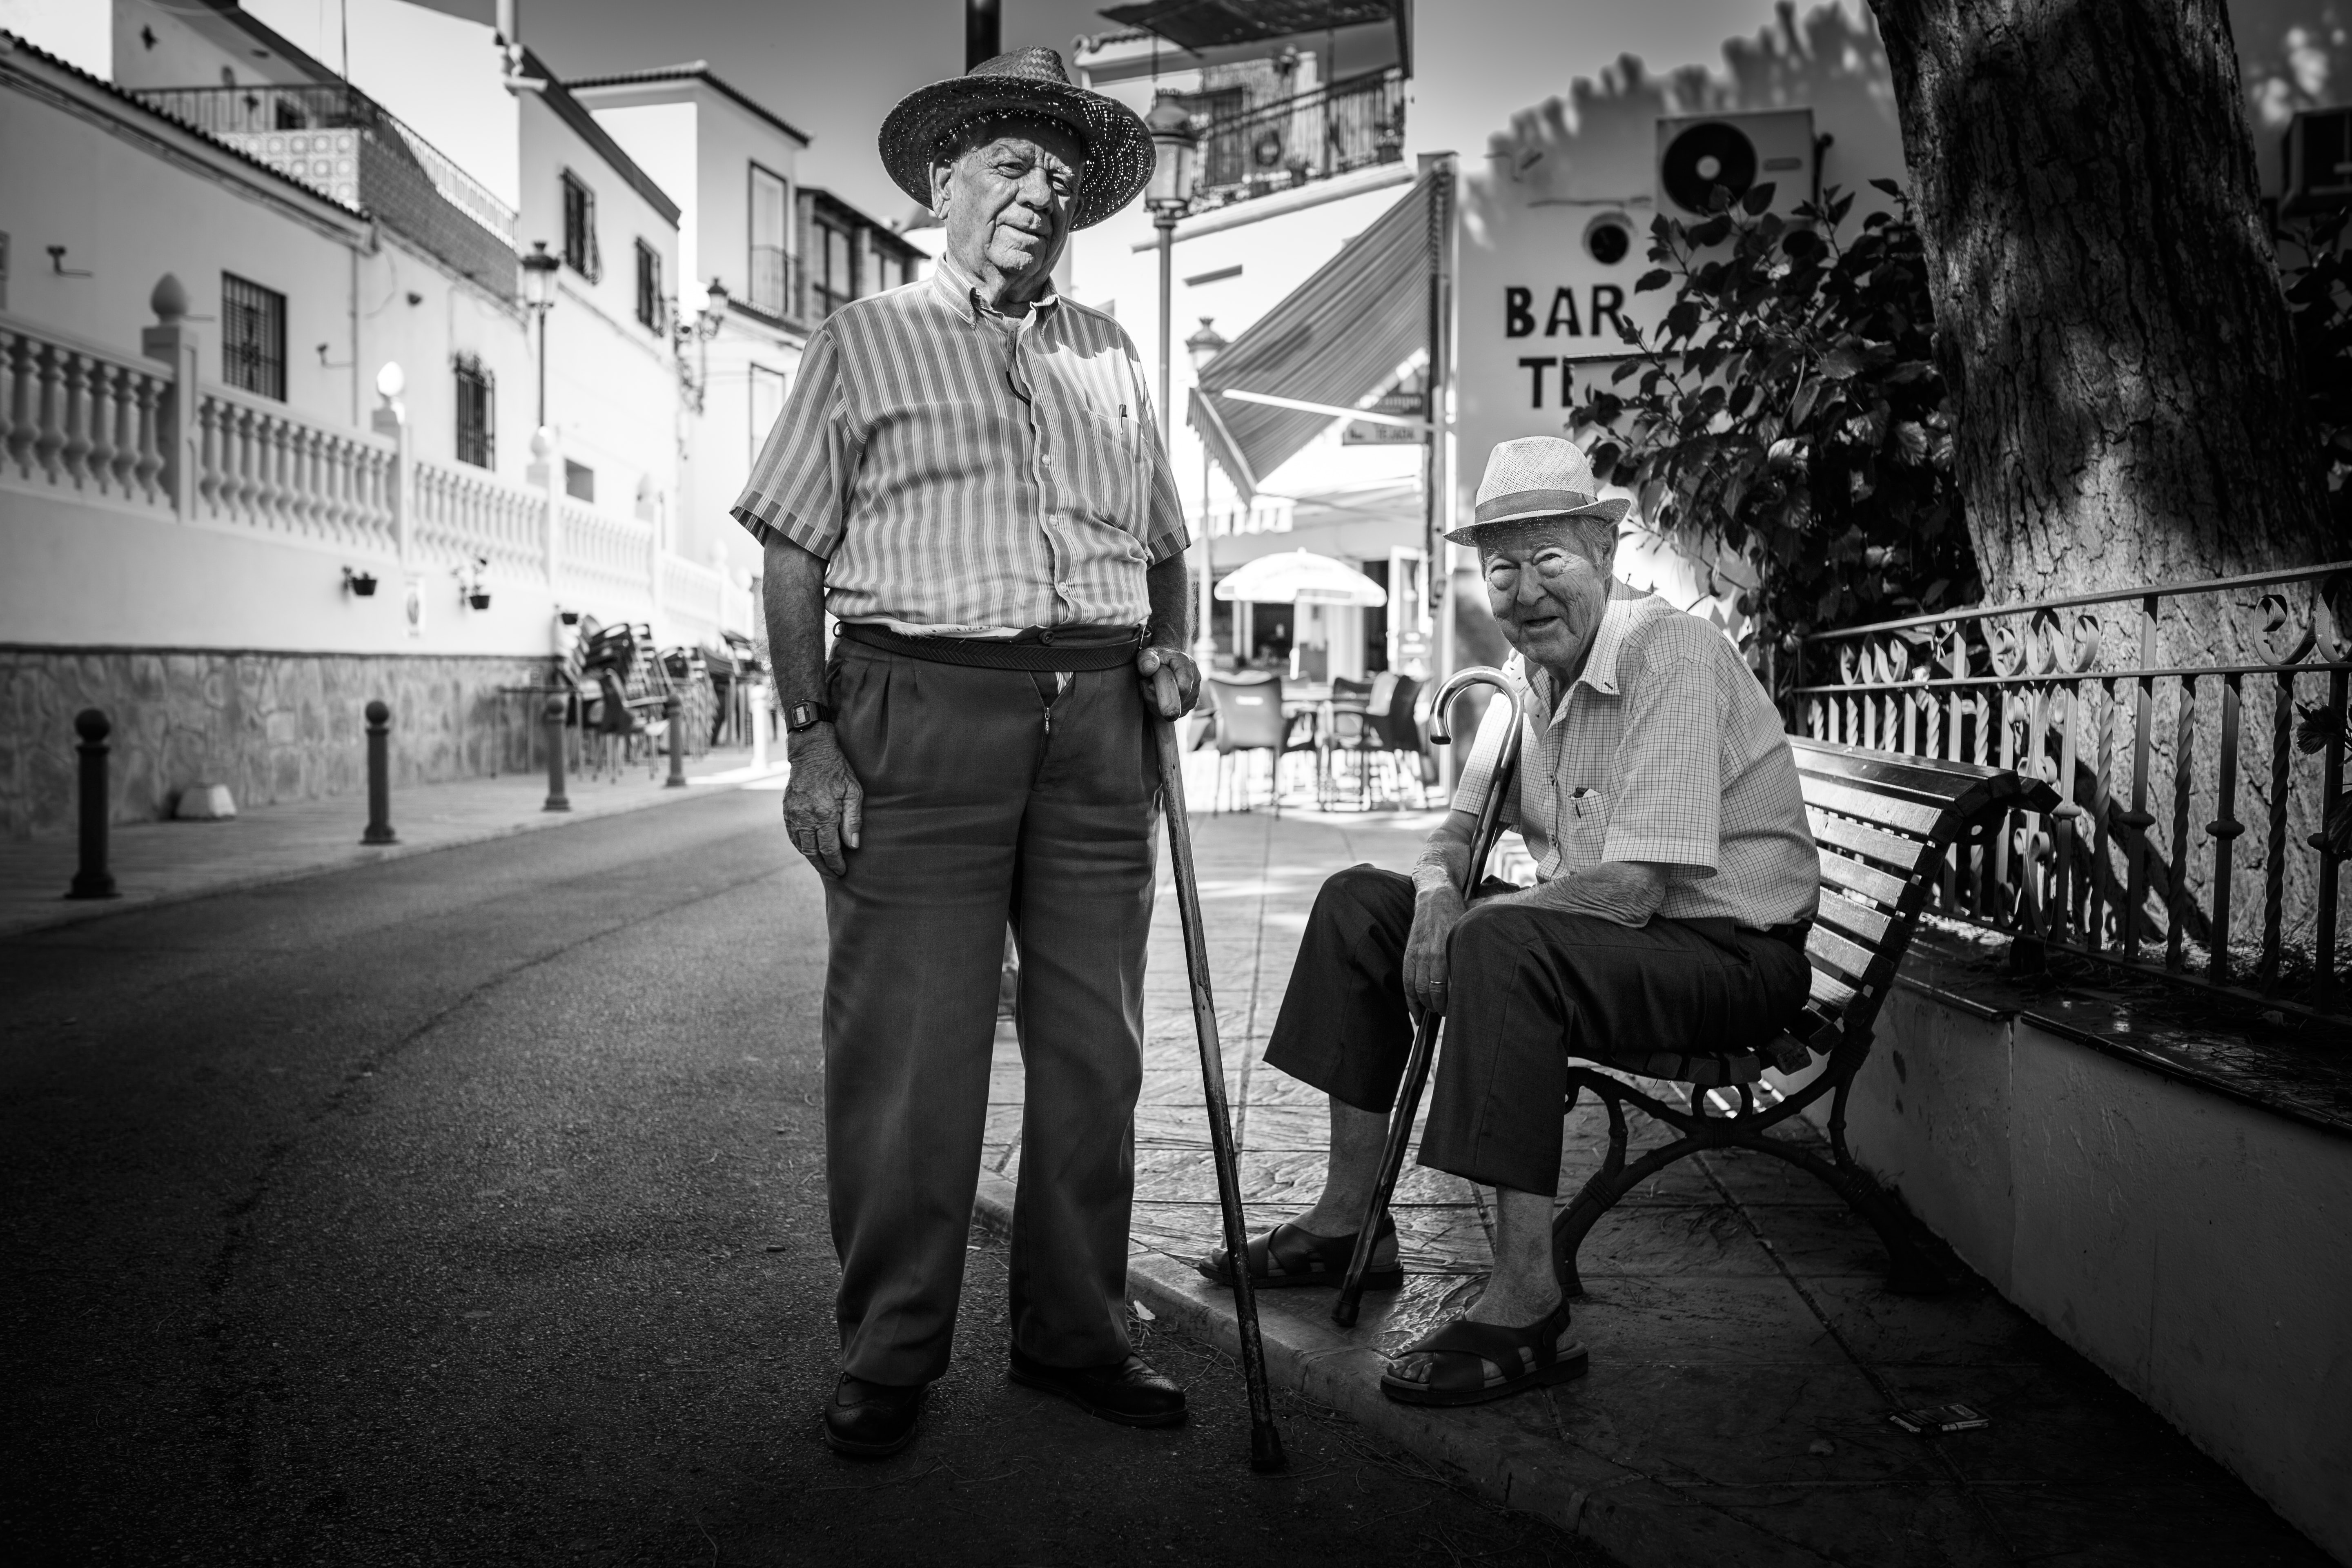 Black and white photograph of two older males, sitting on a bench and standing with a cane.